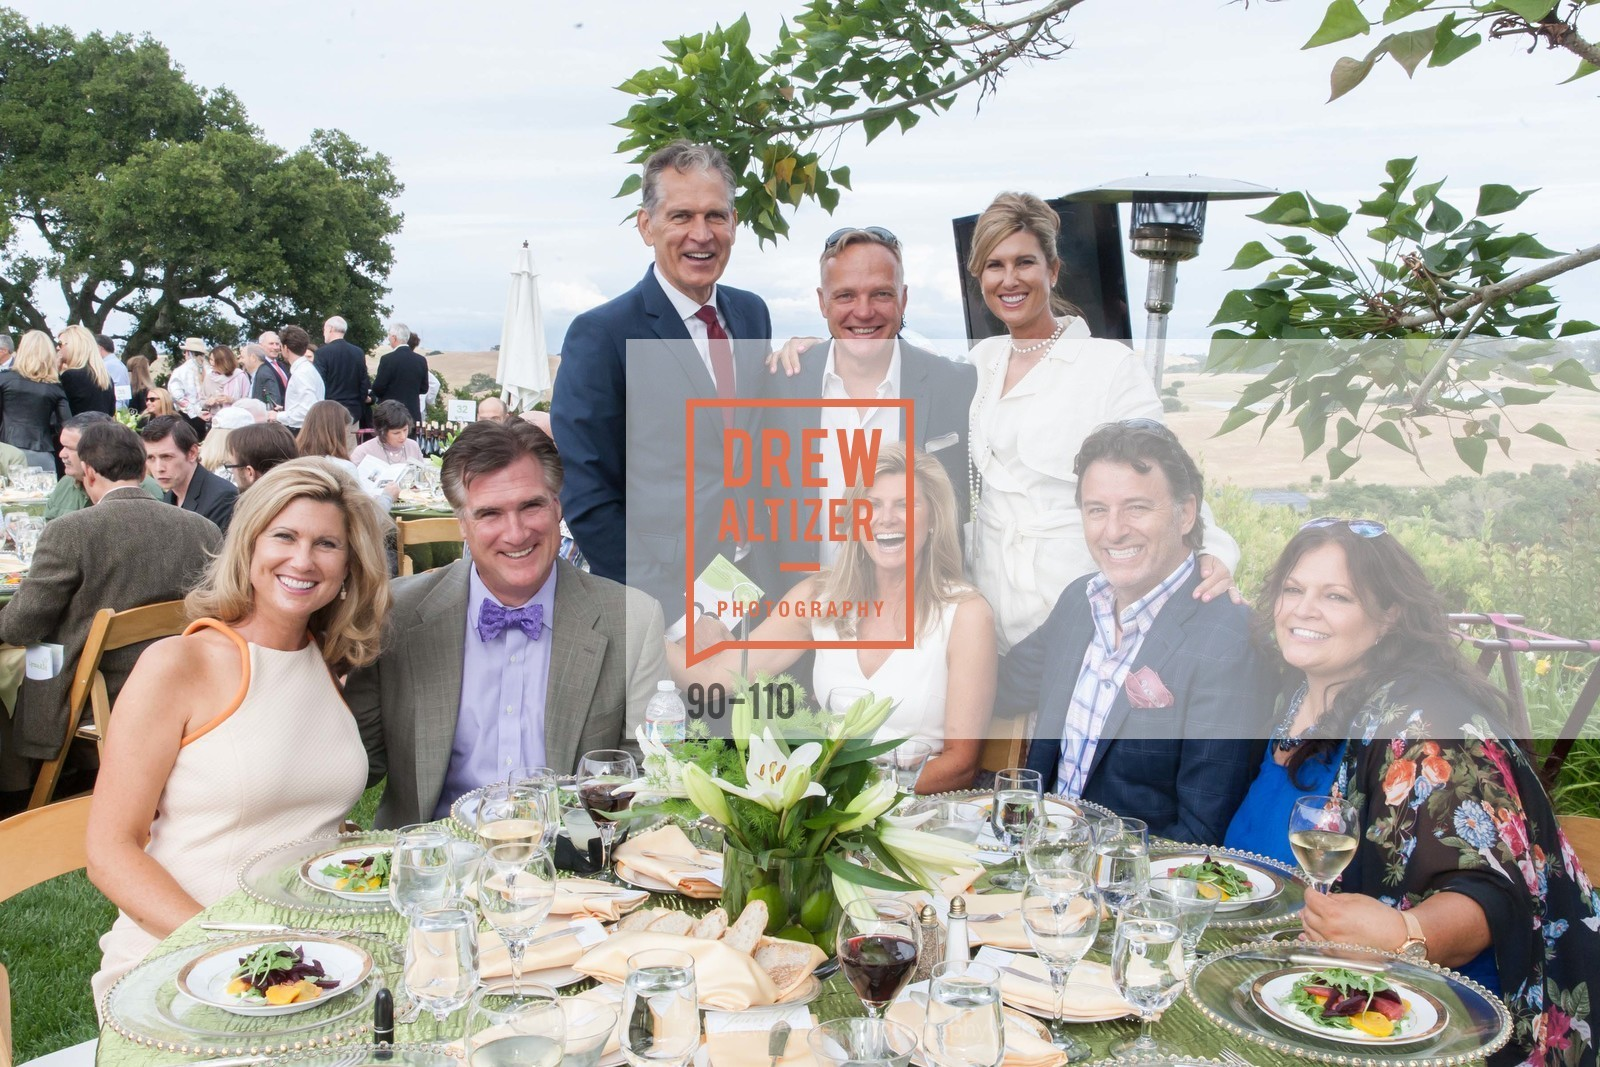 Lucy Kuchan, Joe Nemeth, Ray Strimaitis, Vita Strimaitis, Davorin Kuchan, Aggie Cousins, Craig Cousins, Mary Winchester, LYME AID 2015 Benefiting the Bay Area Lyme Foundation, Private Residence, May 16th, 2015,Drew Altizer, Drew Altizer Photography, full-service agency, private events, San Francisco photographer, photographer california